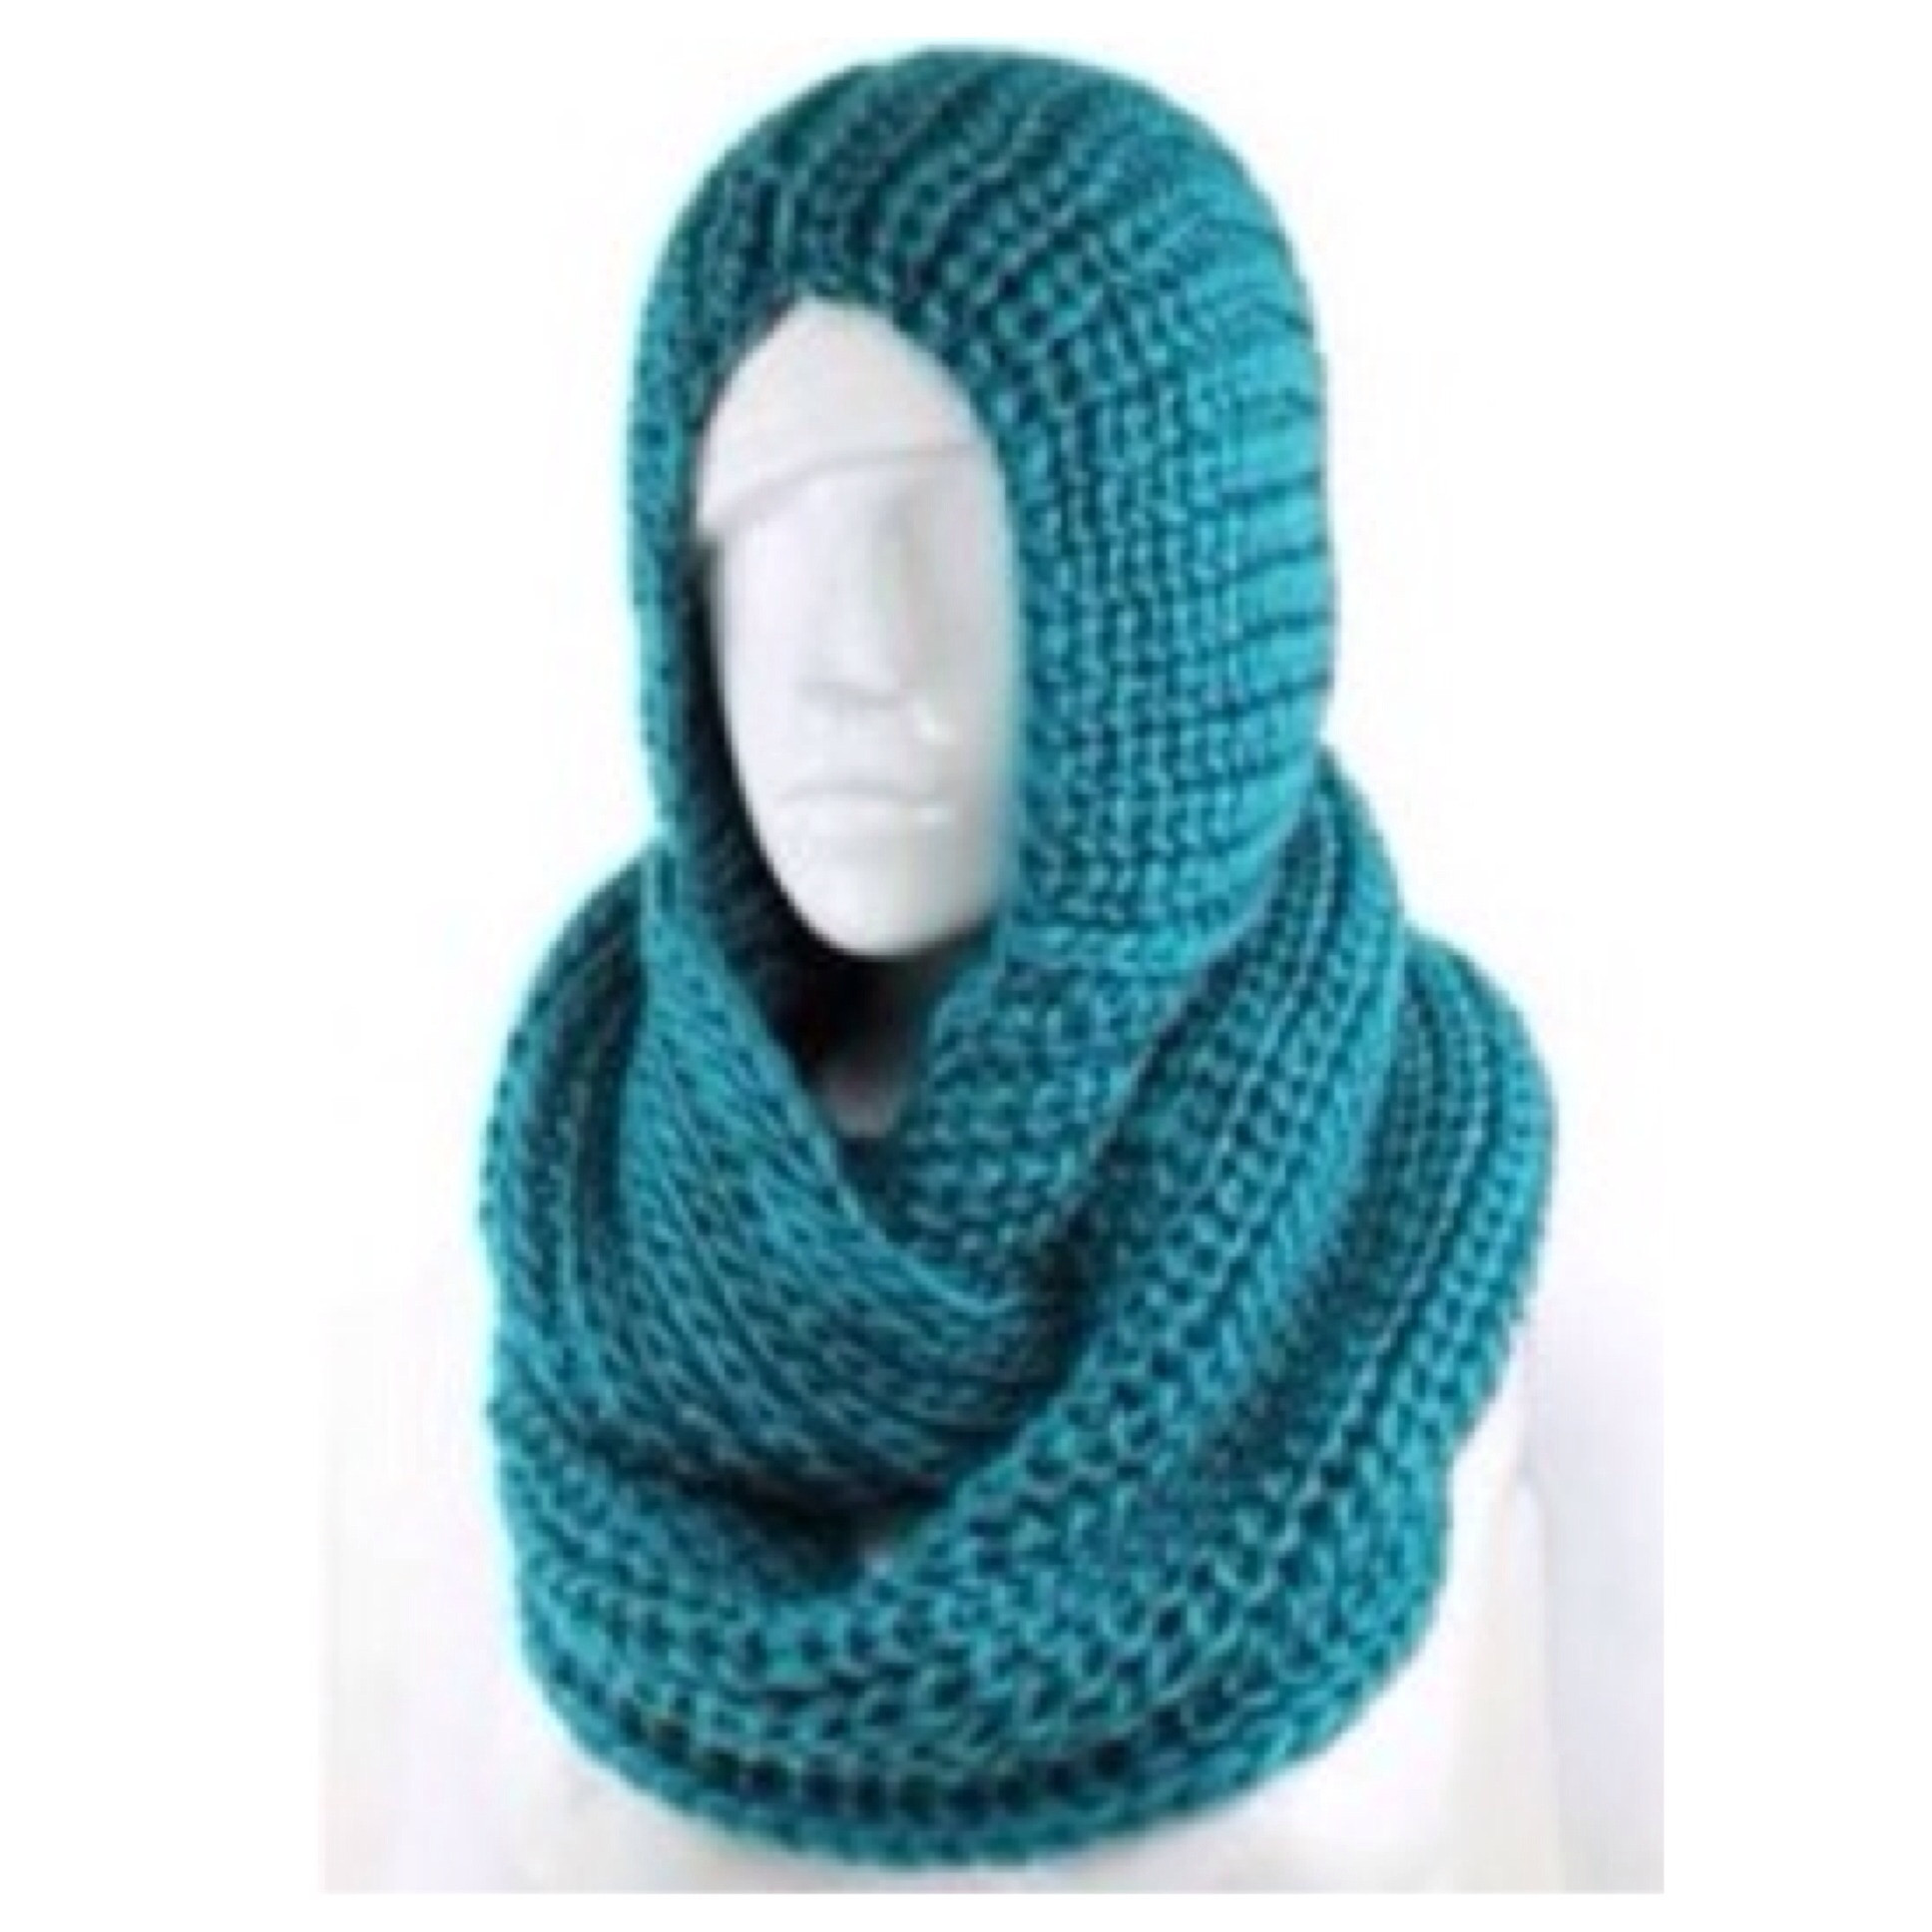 Soft and Cozy Crochet Hooded Teal Infinity Scarf